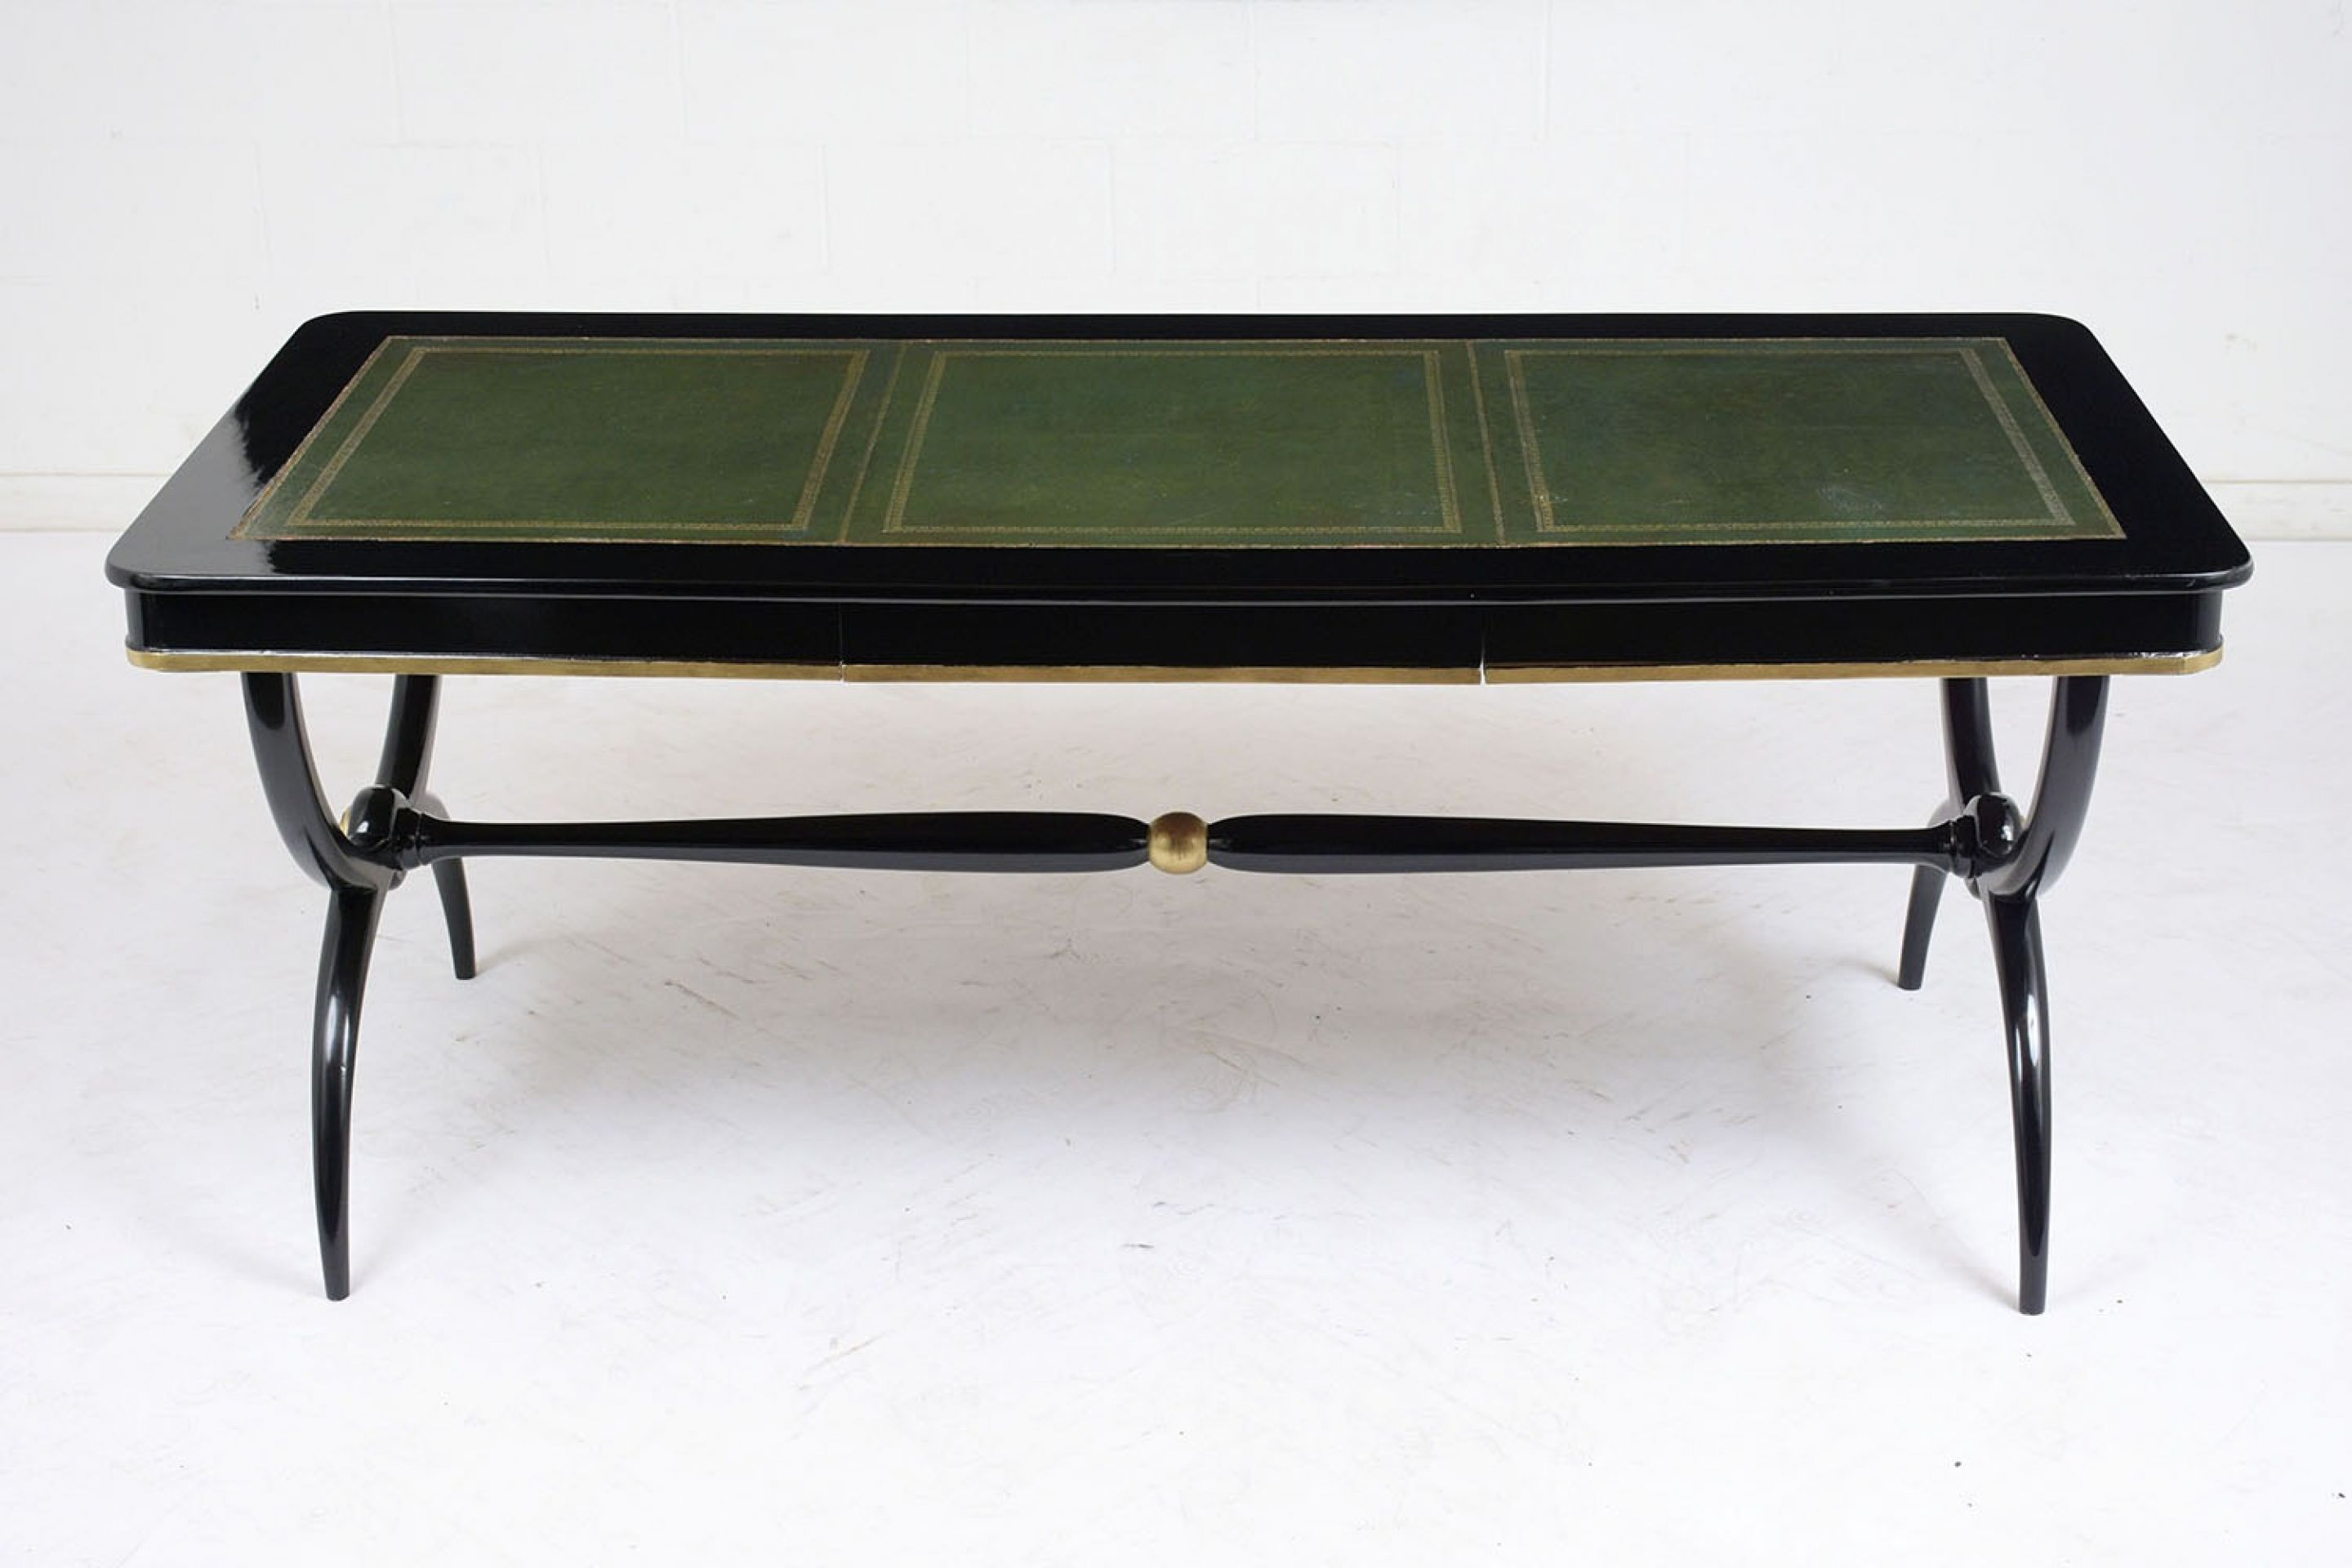 Early 20th Century English Ebonized Regency-Style Desk